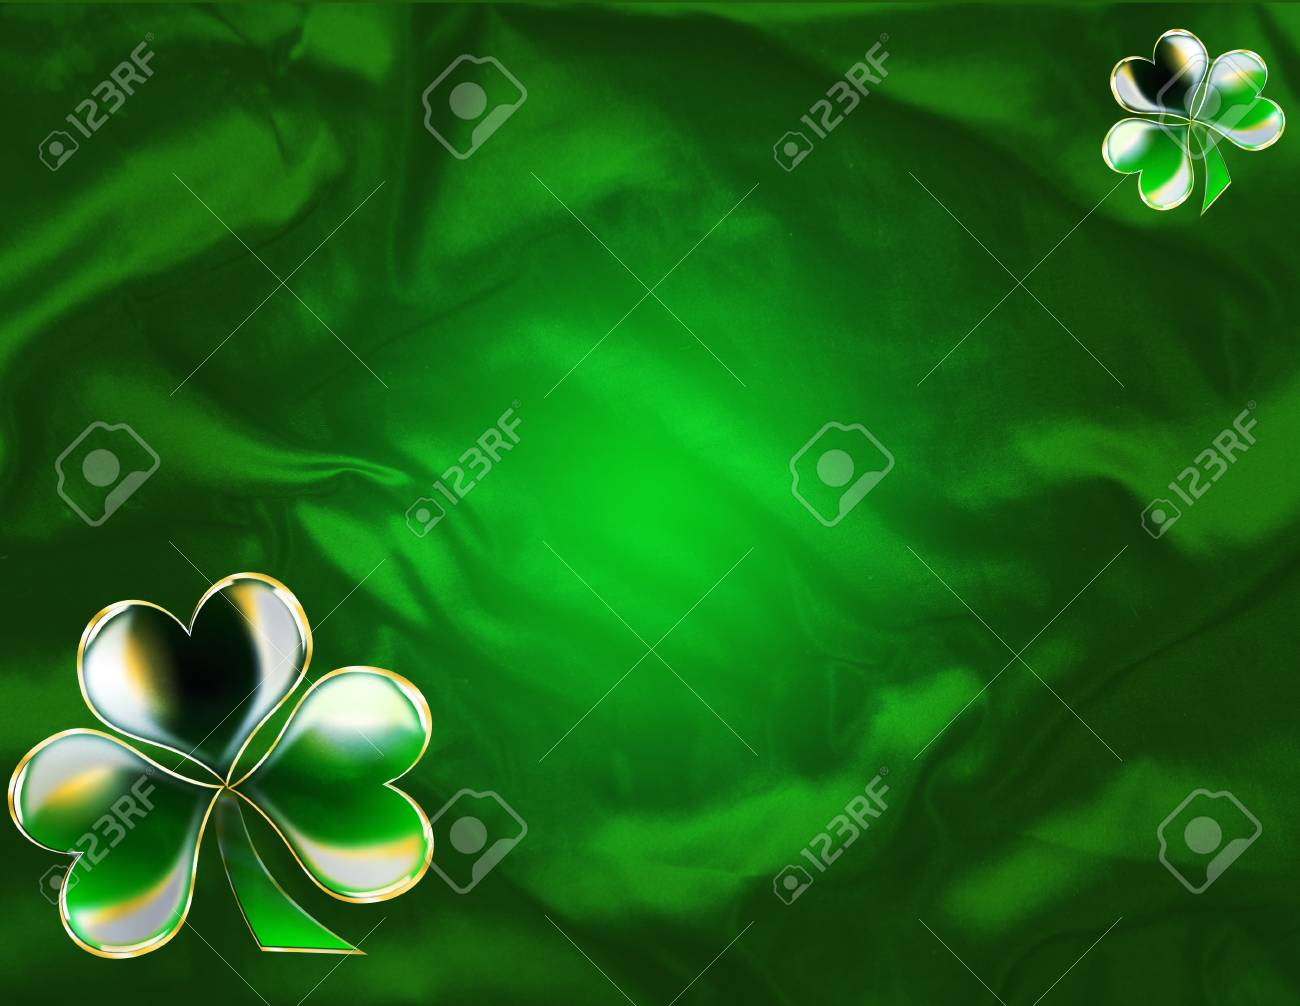 st. patrick Stock Photo - 4315517